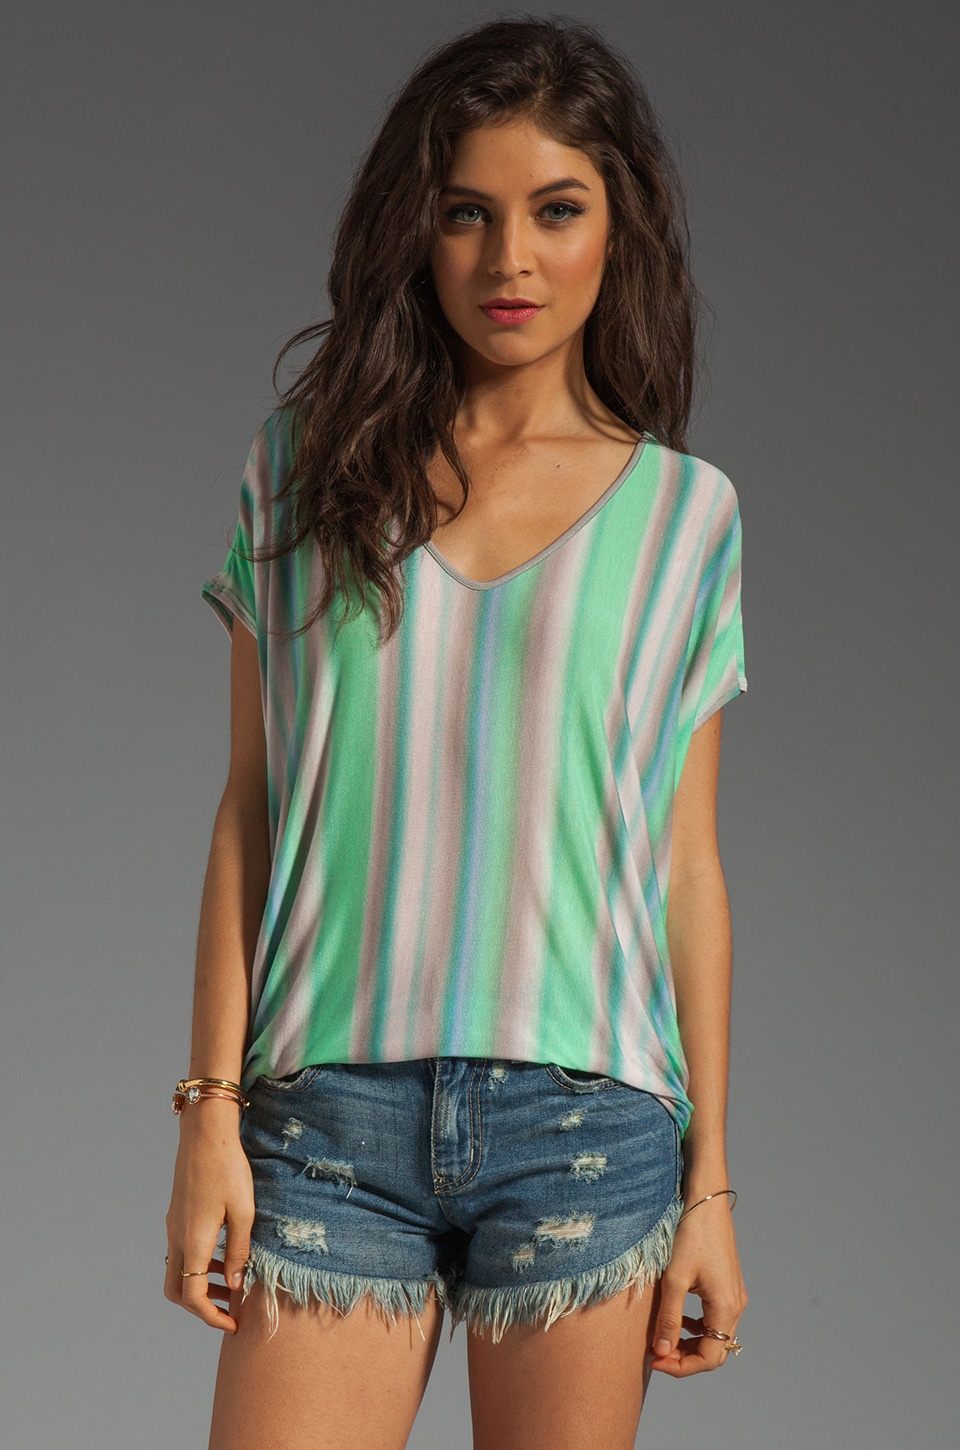 Velvet by Graham & Spencer Nelda Sunset Stripe Top in Aquarium